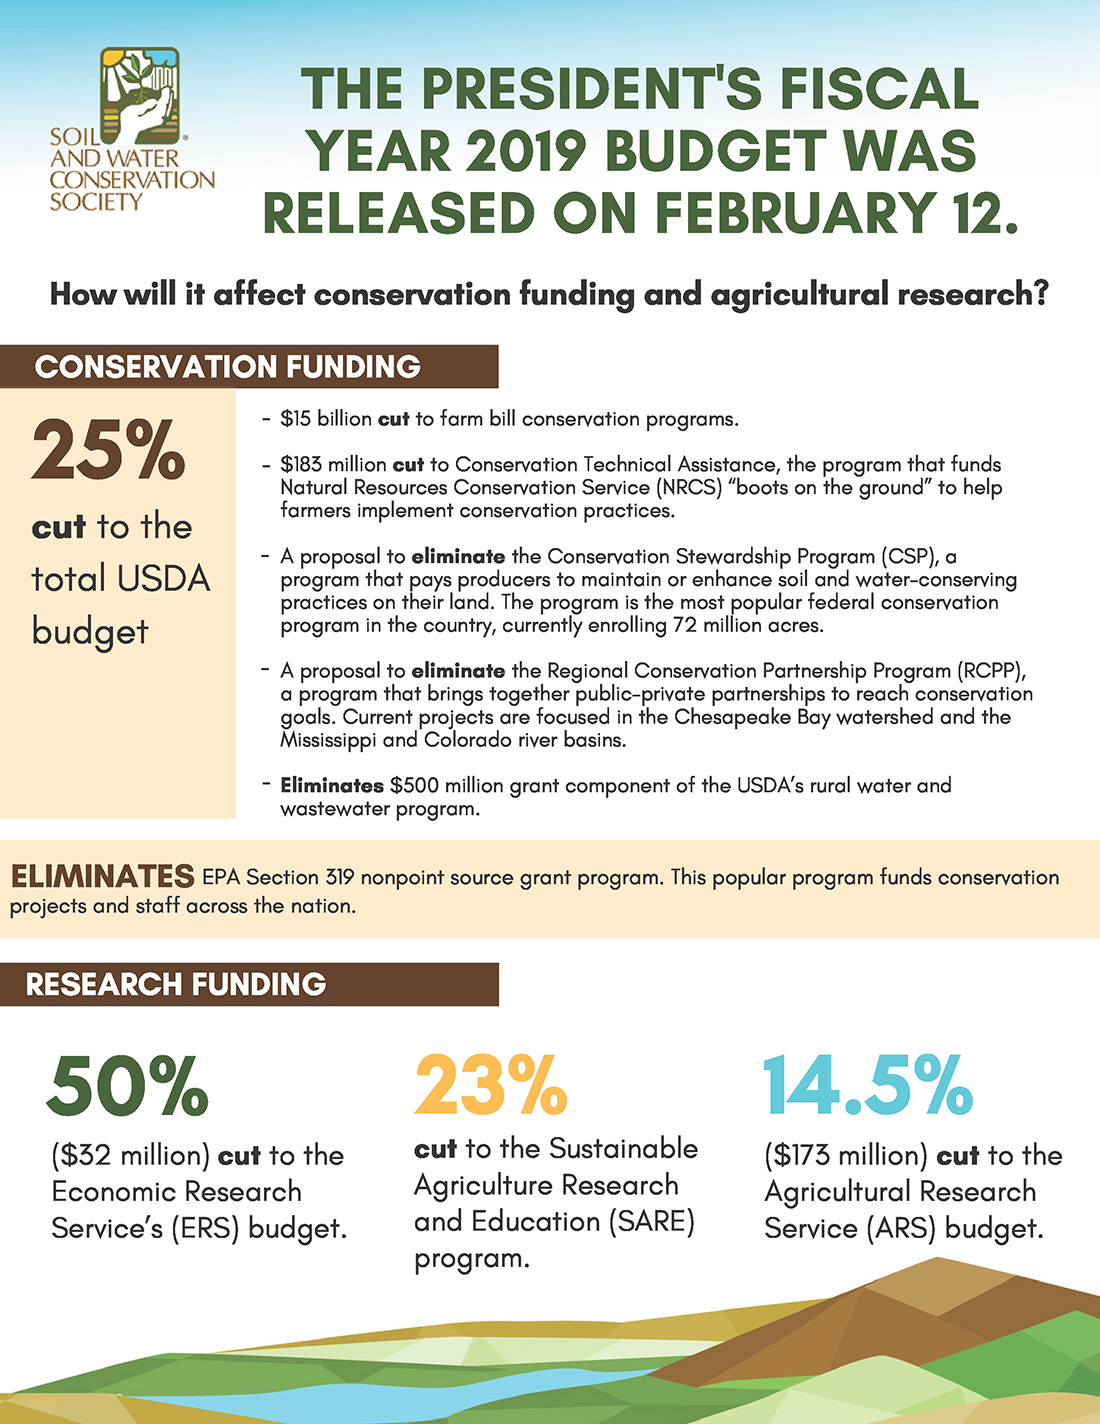 ankeny ia president trump released the fiscal year 2019 budget on february 12 2018 below is a brief breakdown of how the budget will affect conservation